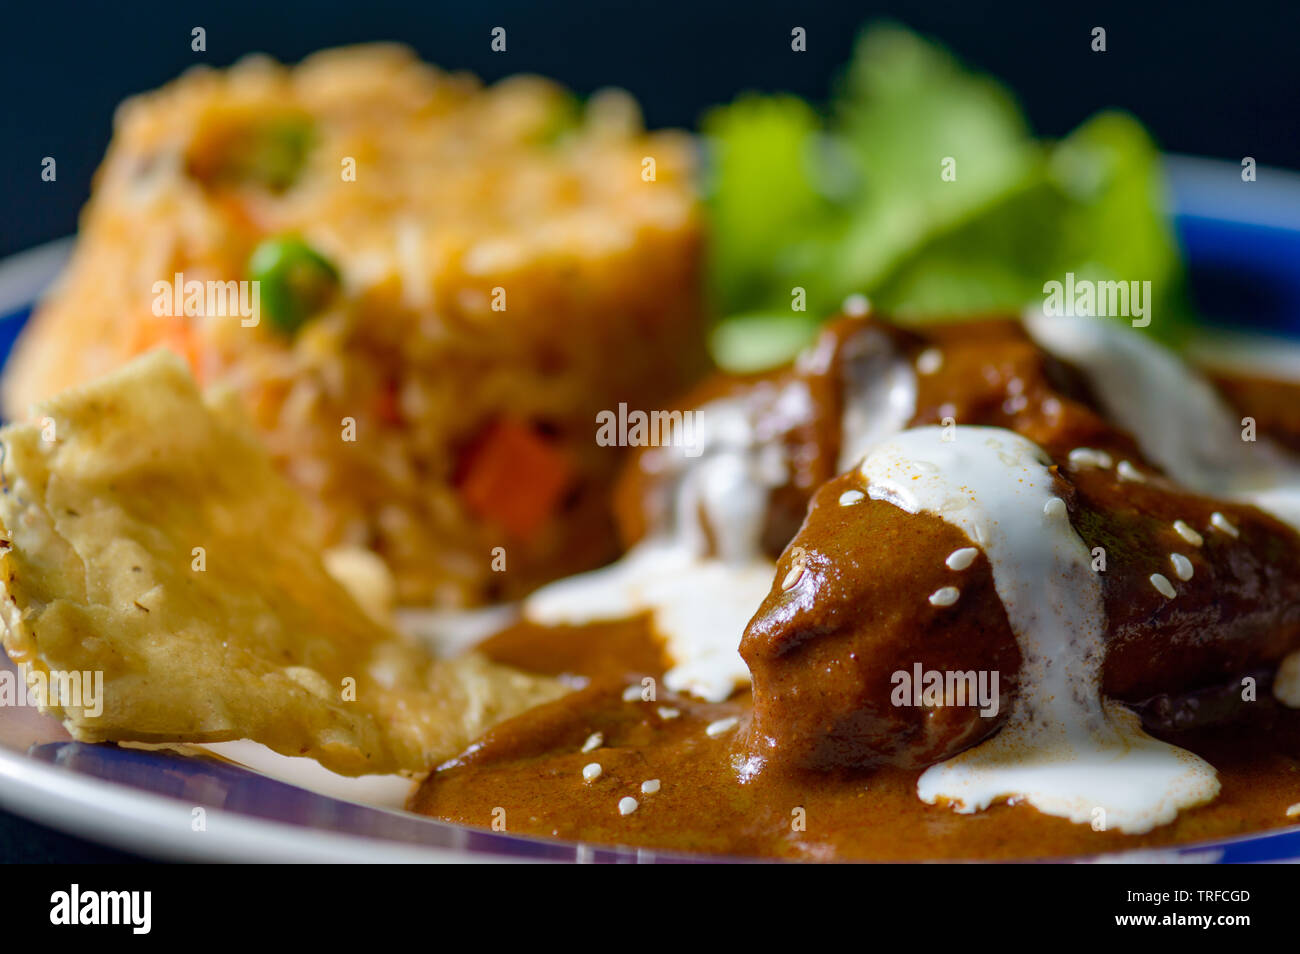 Mole Poblano sauce with chicken and Mexican rice, traditional specialty food of Oaxaca and Puebla. Food, restaurants, menus, Mexico, travel, tradition Stock Photo